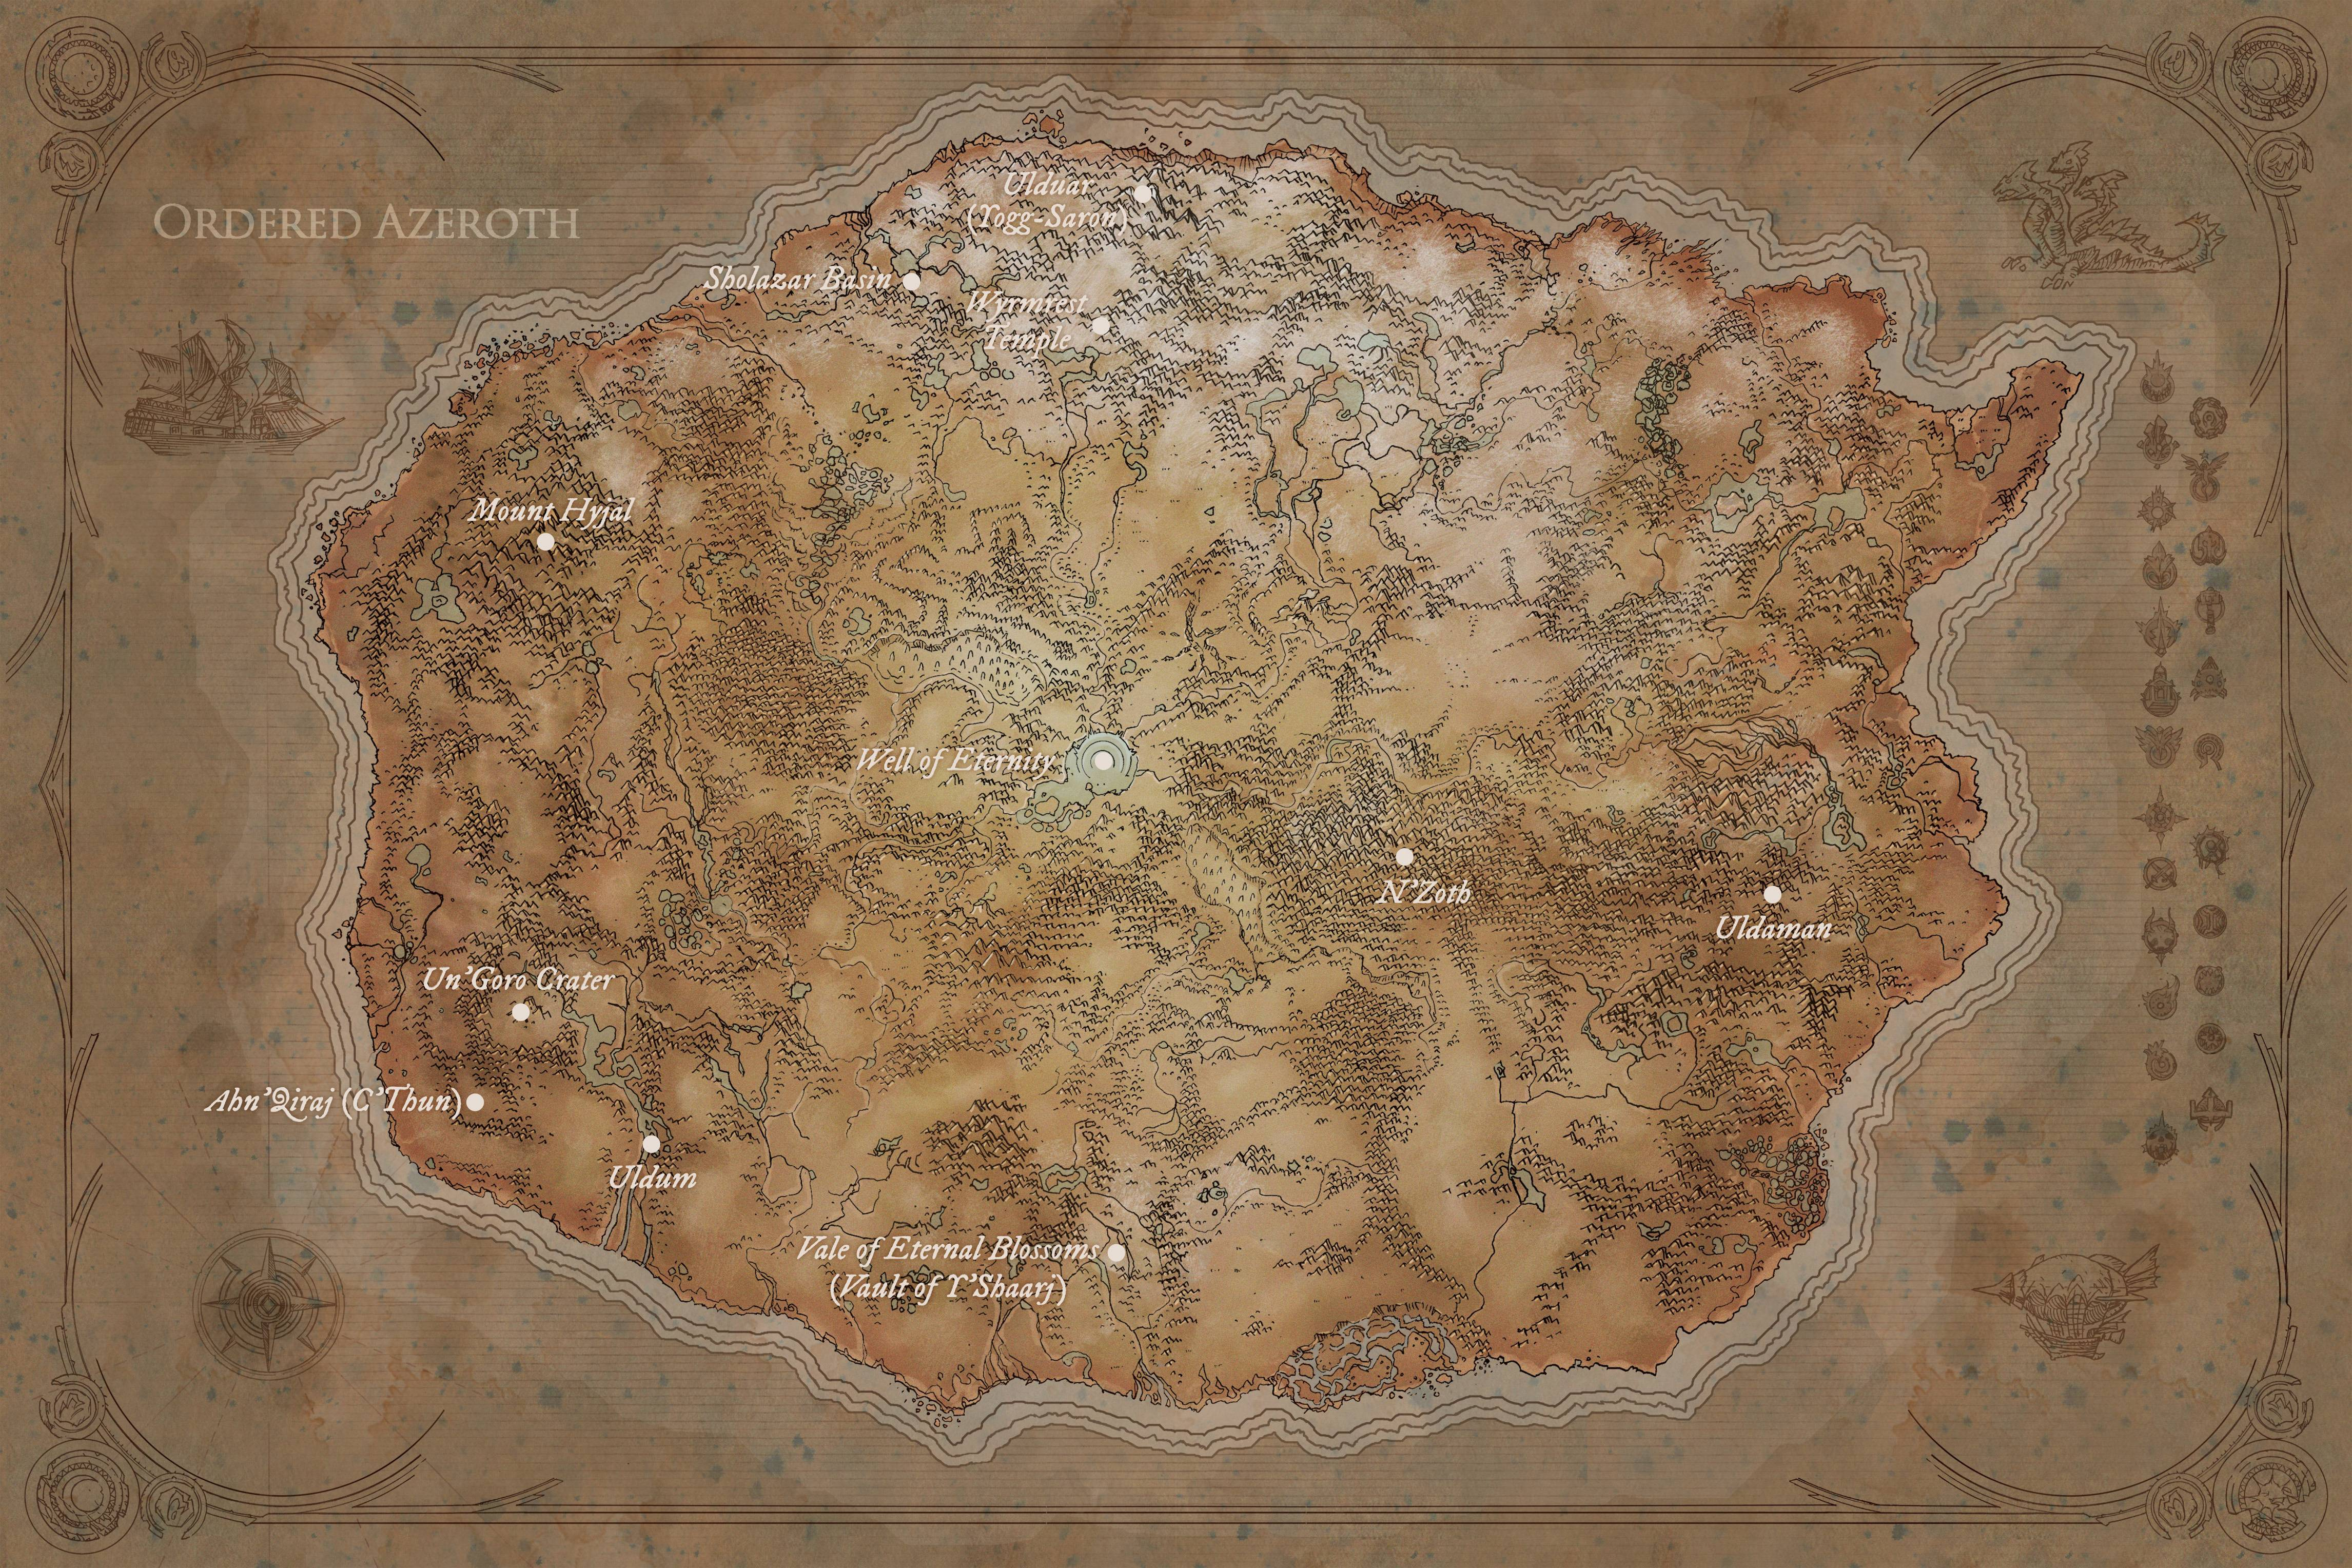 The Other Side of Azeroth from Argus - World of Warcraft Forums